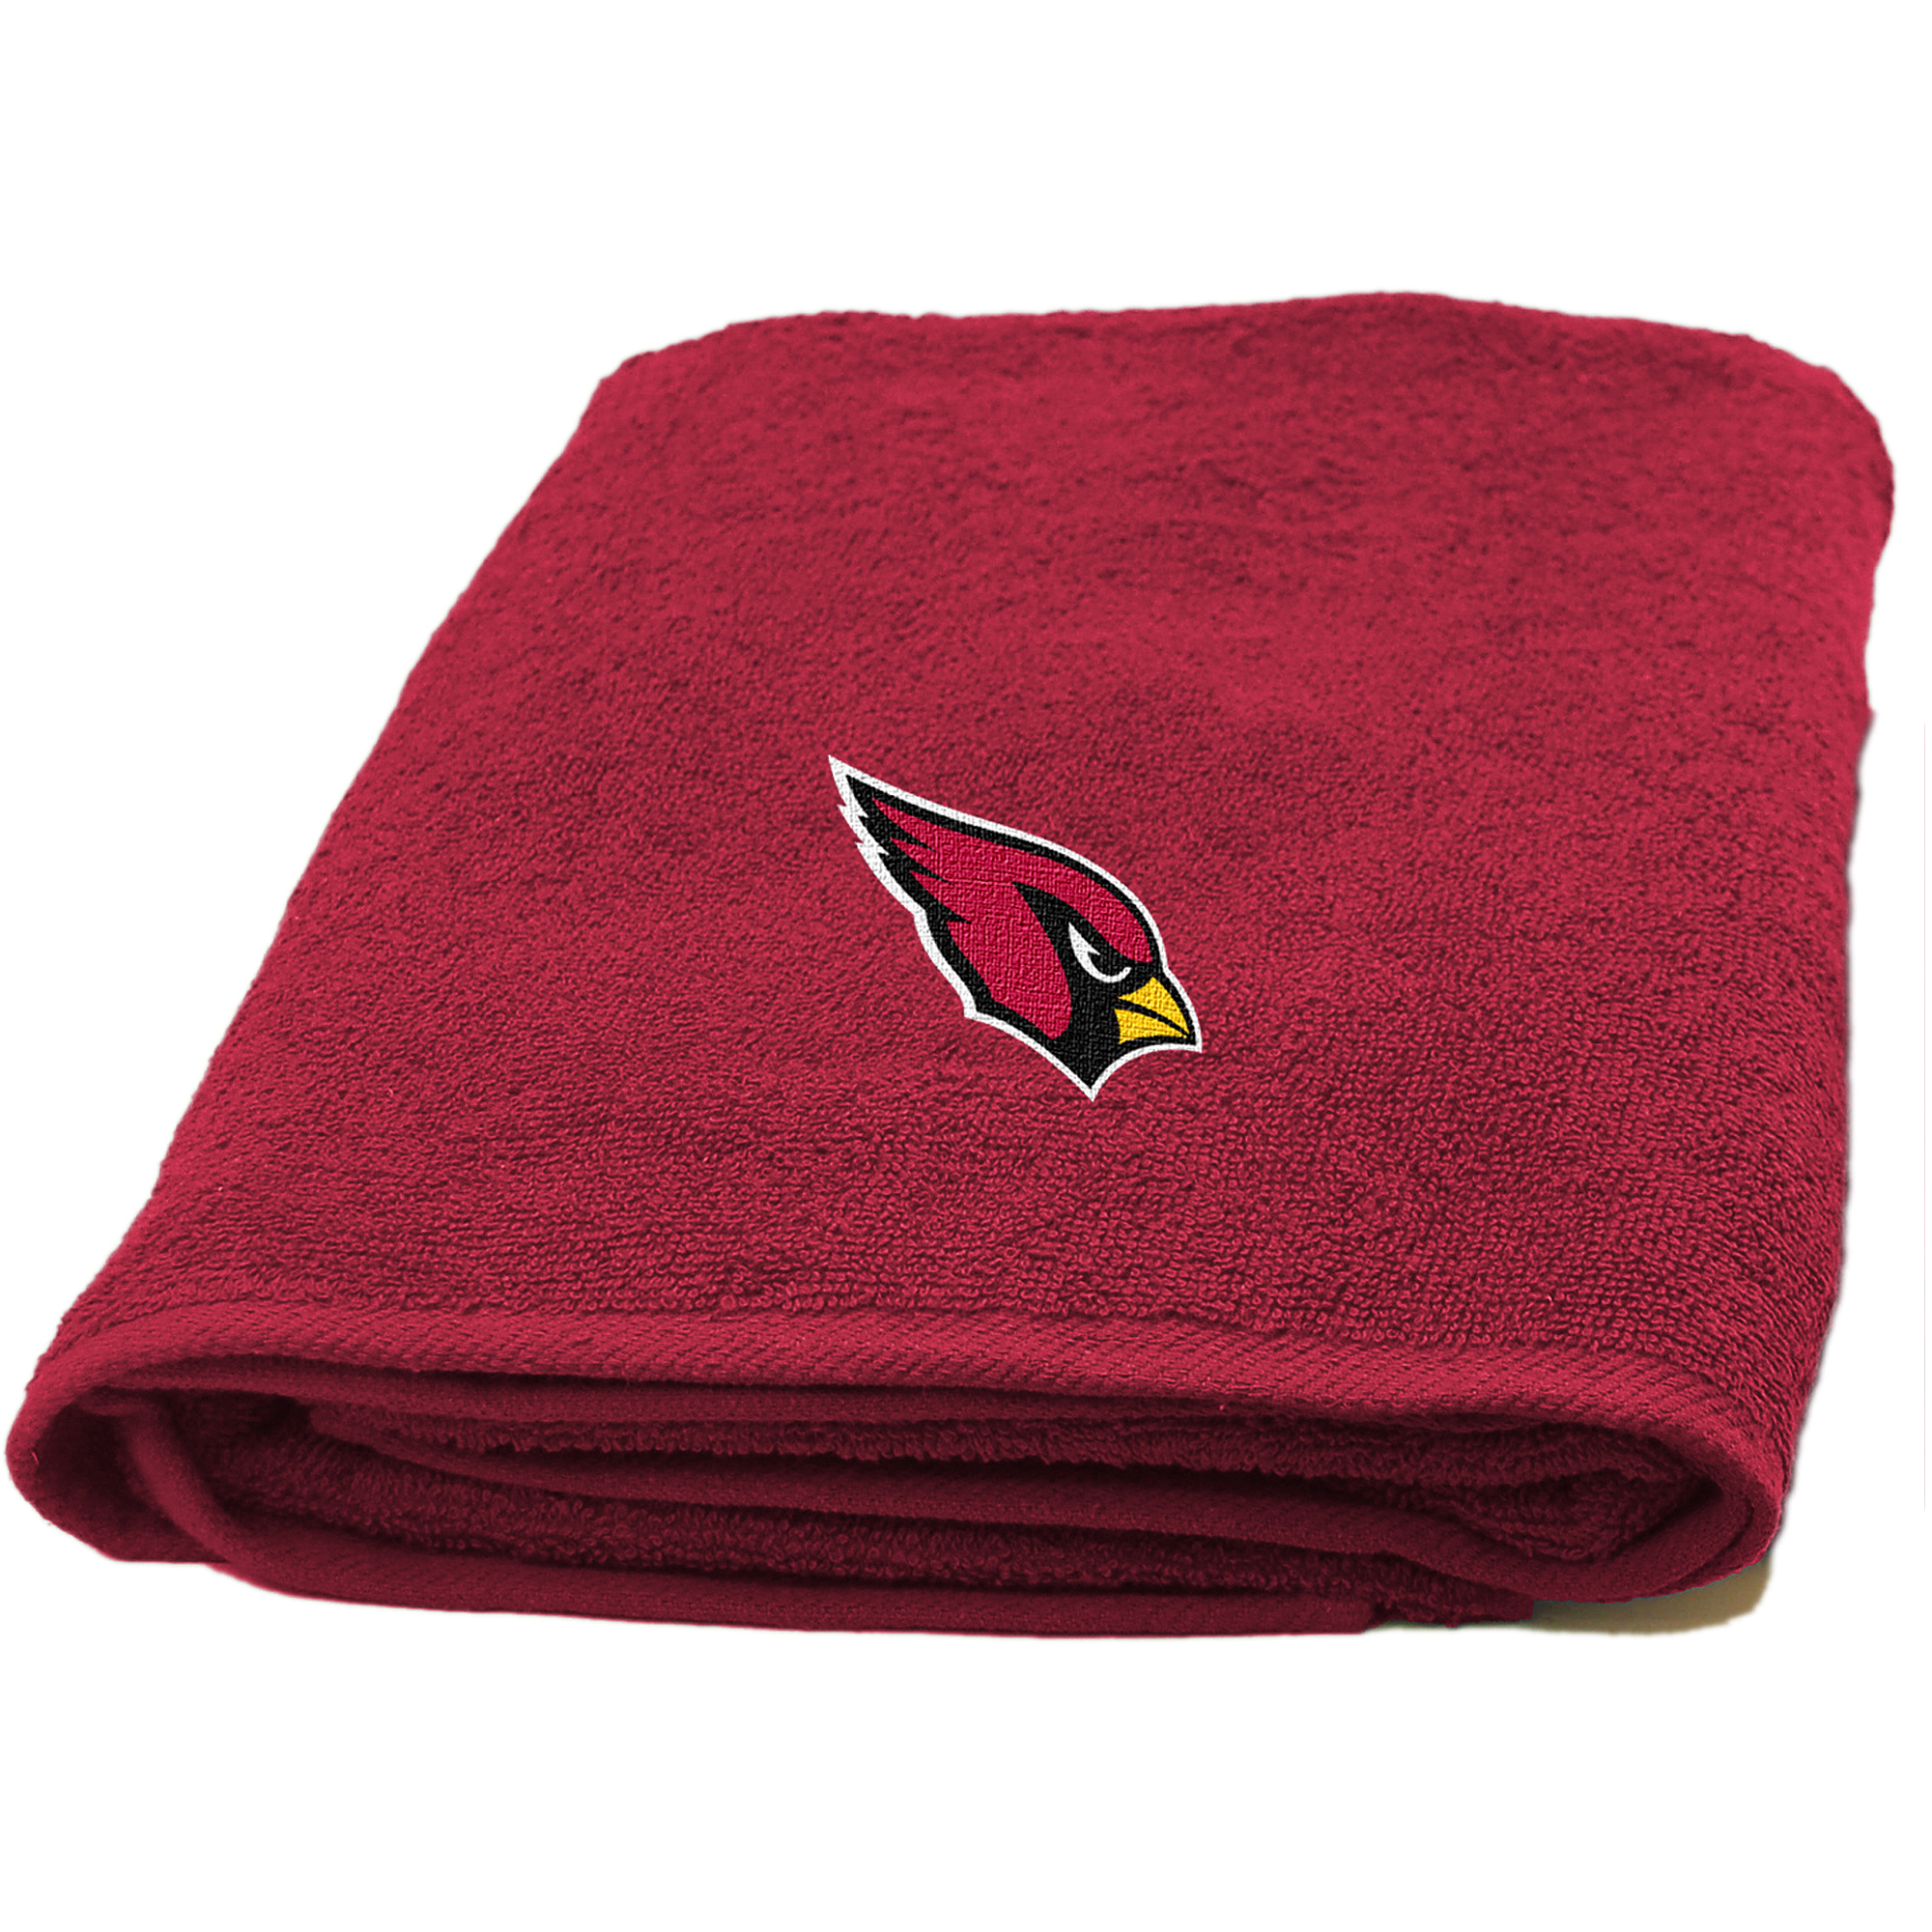 NFL Arizona Cardinals Decorative Bath Collection Bath Towel